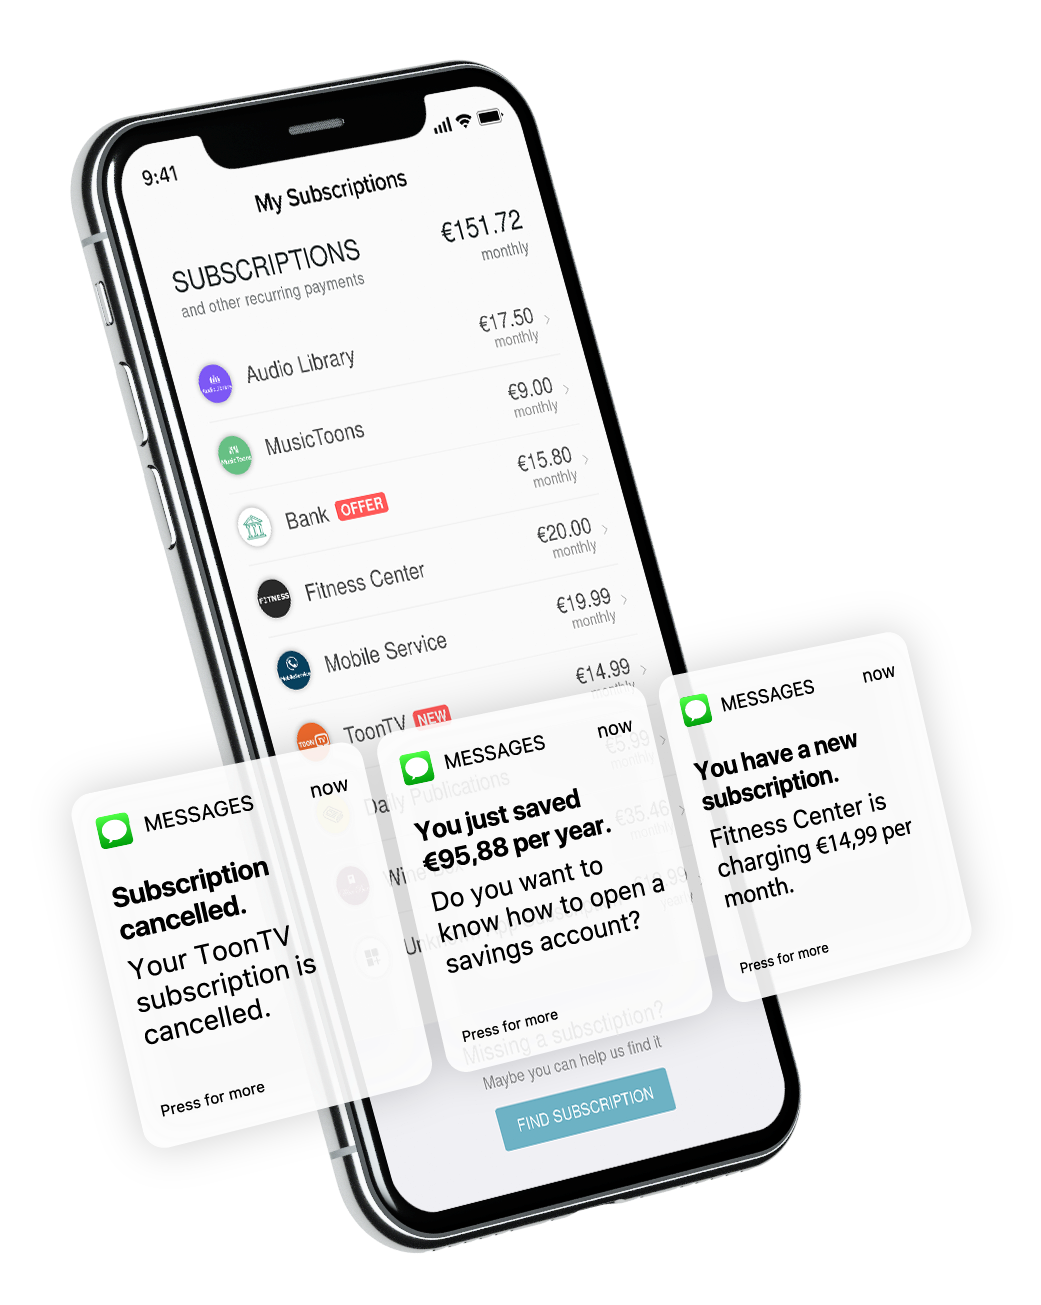 get notifications about subscriptions